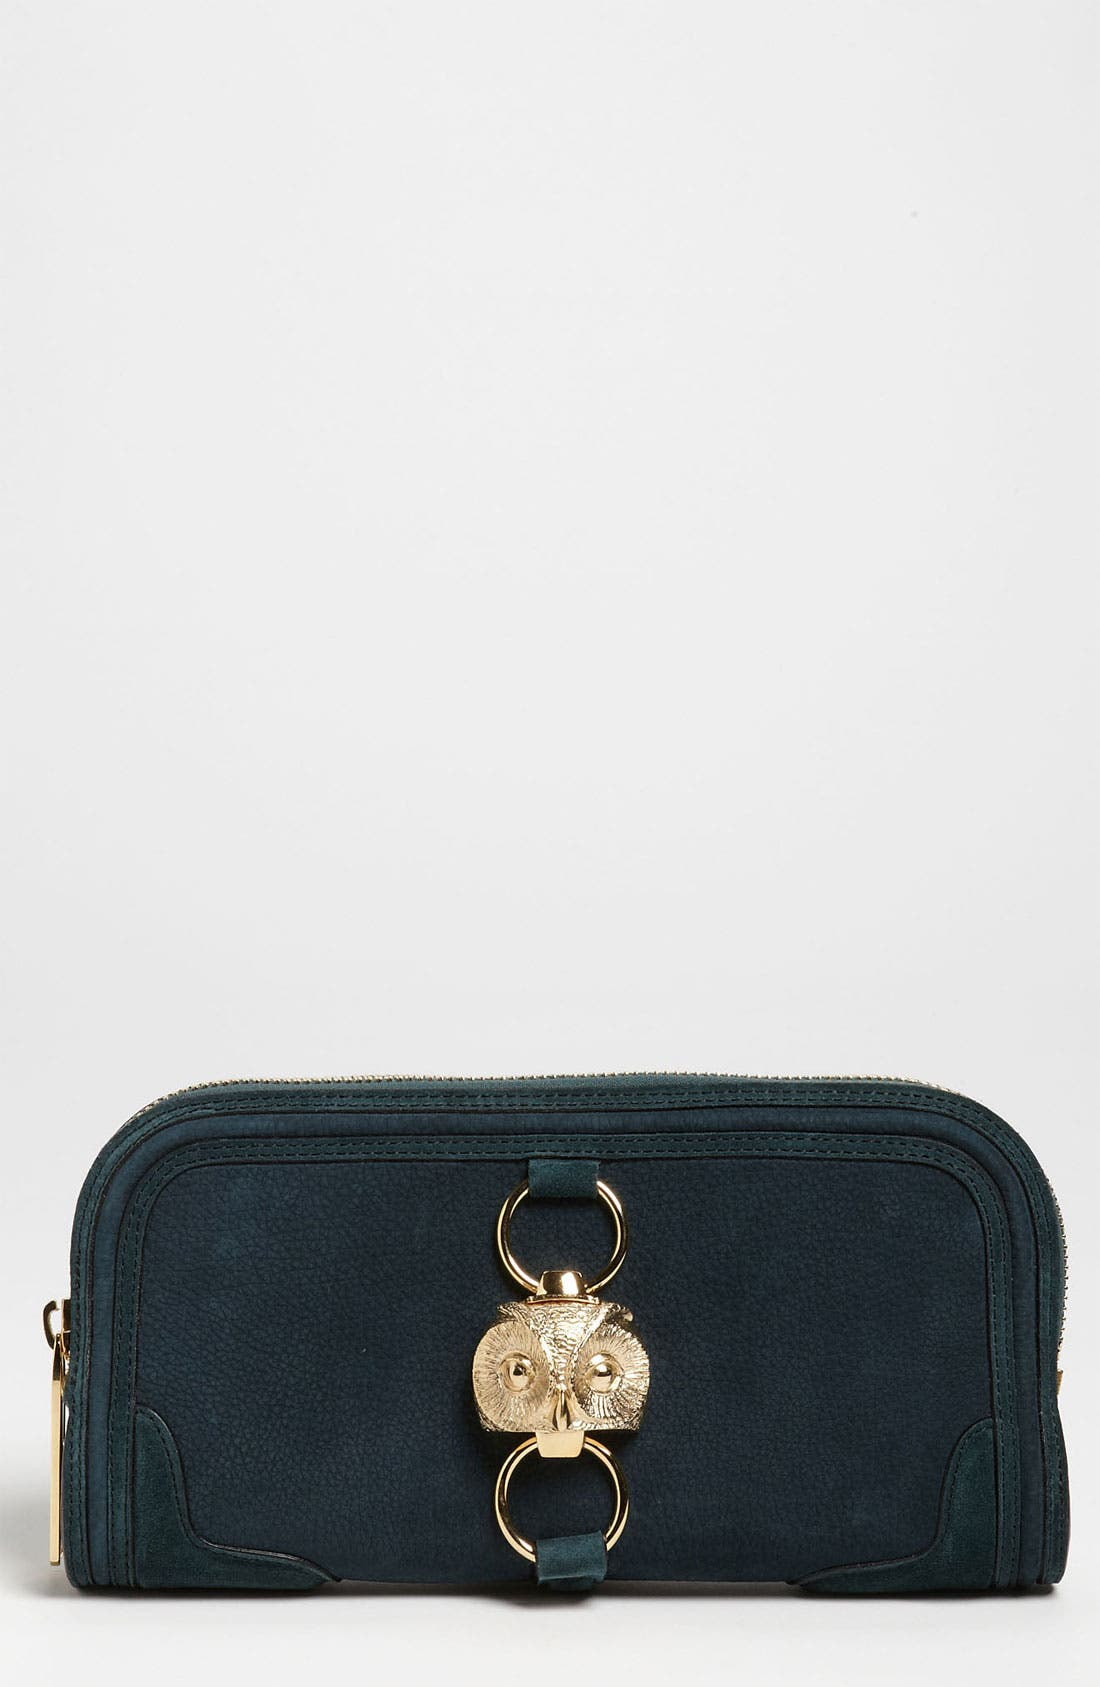 Alternate Image 1 Selected - Burberry Prorsum Nubuck Leather Clutch